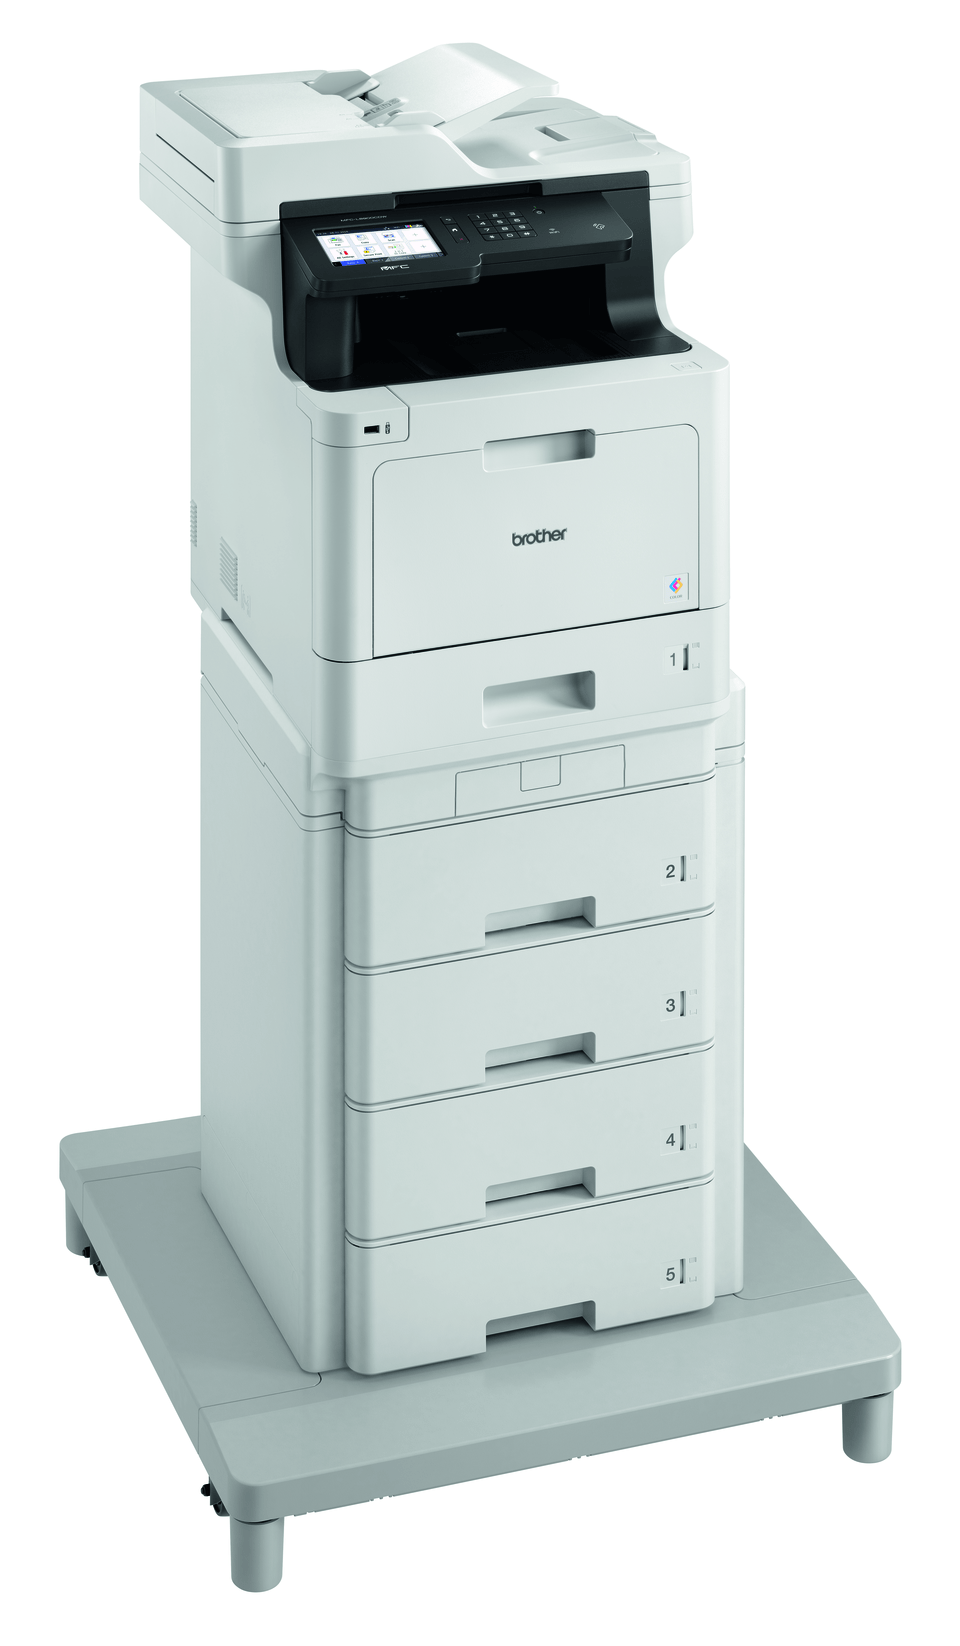 Brother MFC-L8900CDWMT Professional Colour, Duplex, Wireless Laser All-in-one Printer + Tower Tray + Tower Tray Connector 3